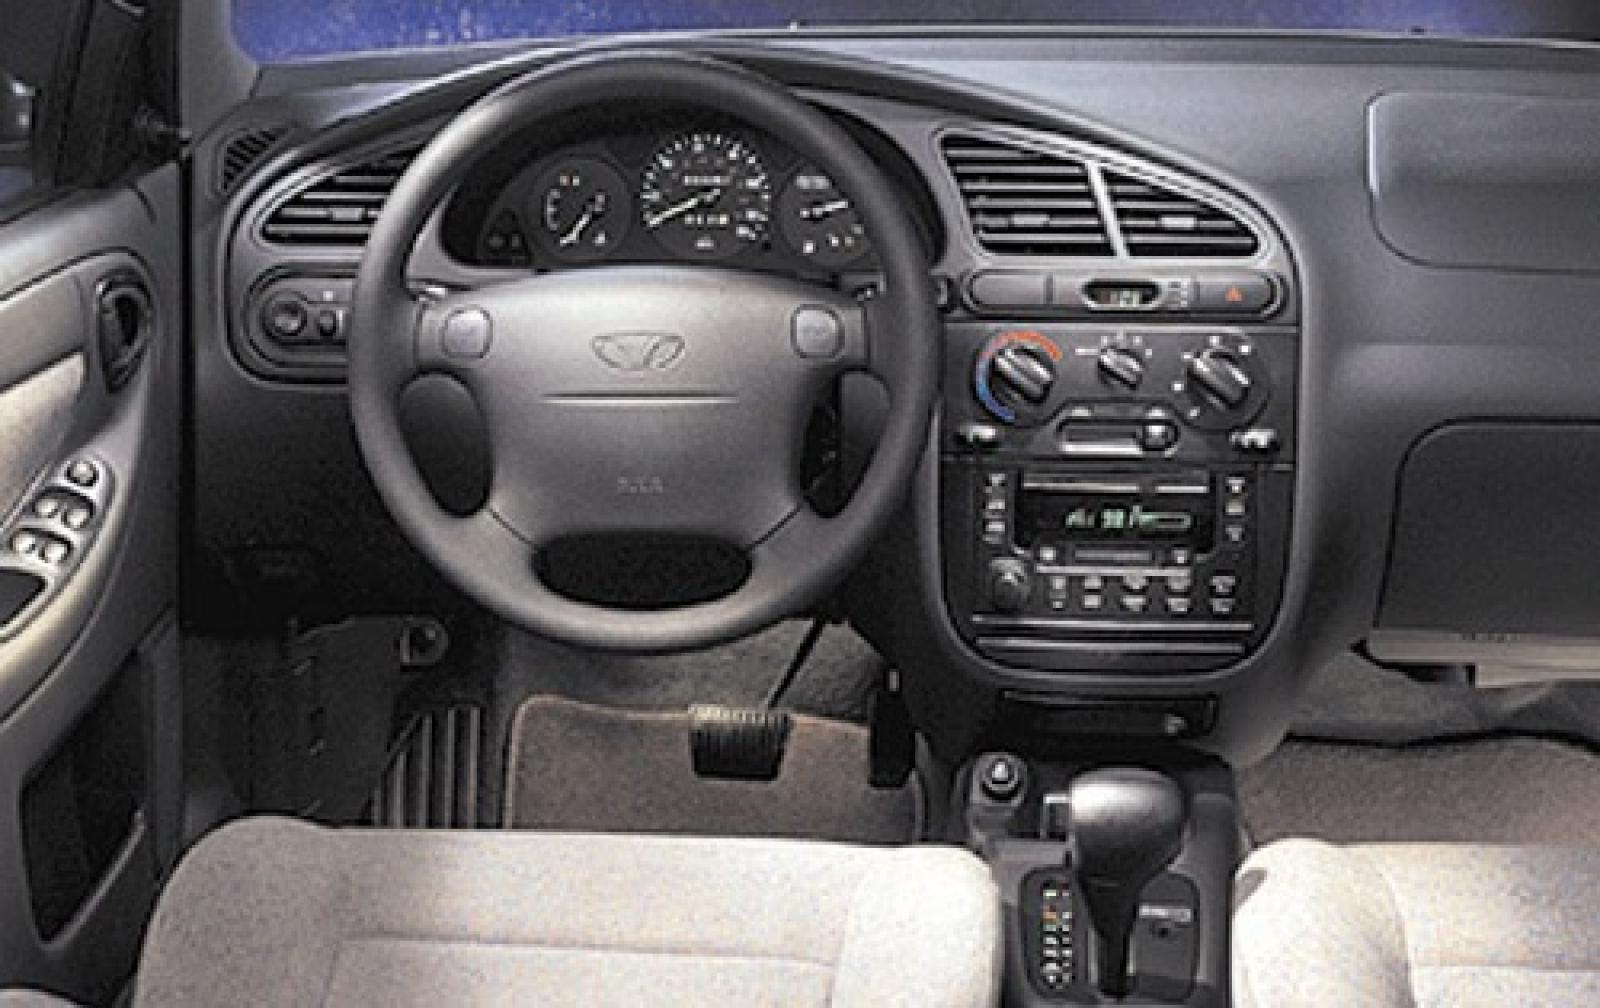 2000 Daewoo Leganza Audio System Stereo Wiring Diagram